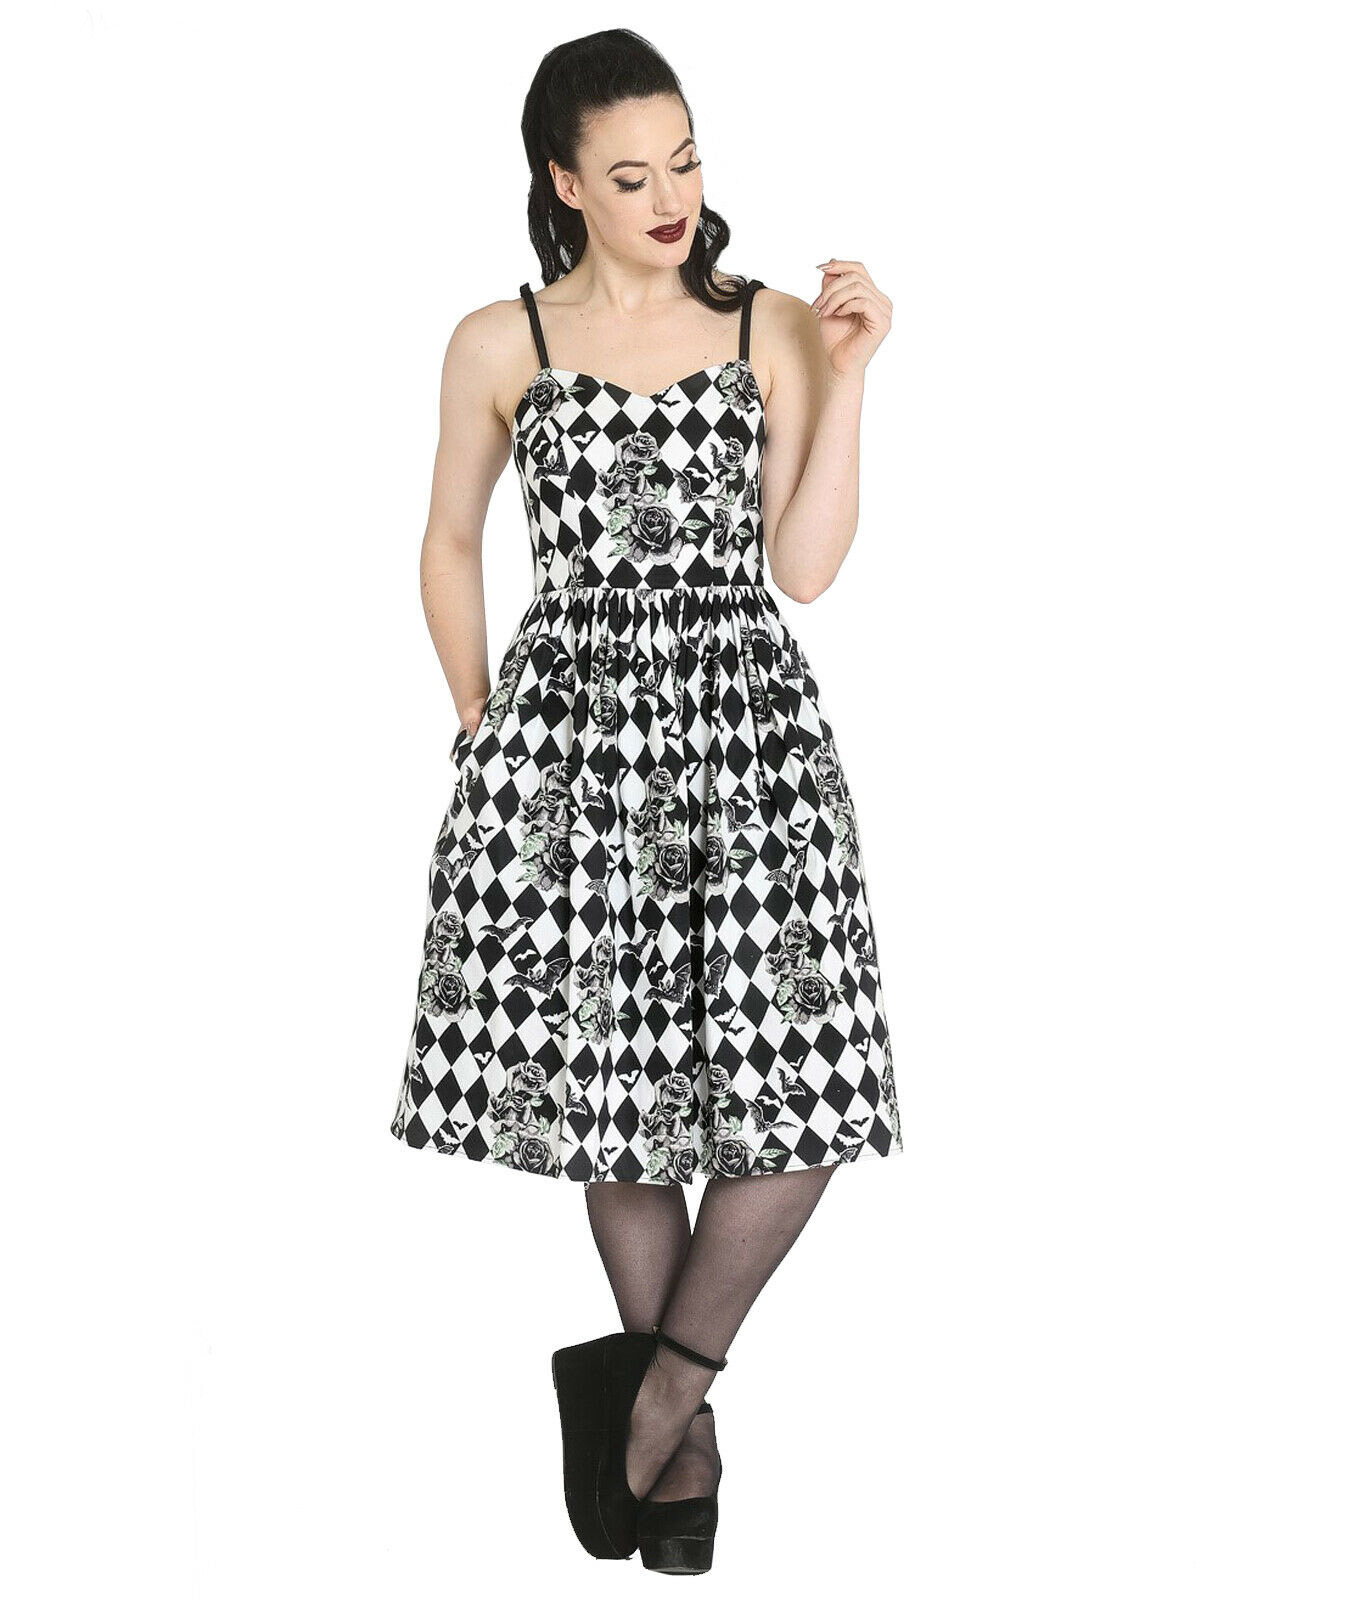 Hell-Bunny-Black-Harlequin-Pinup-50s-Gothic-Dress-HAUNTLEY-Bats-Roses-All-Sizes thumbnail 15